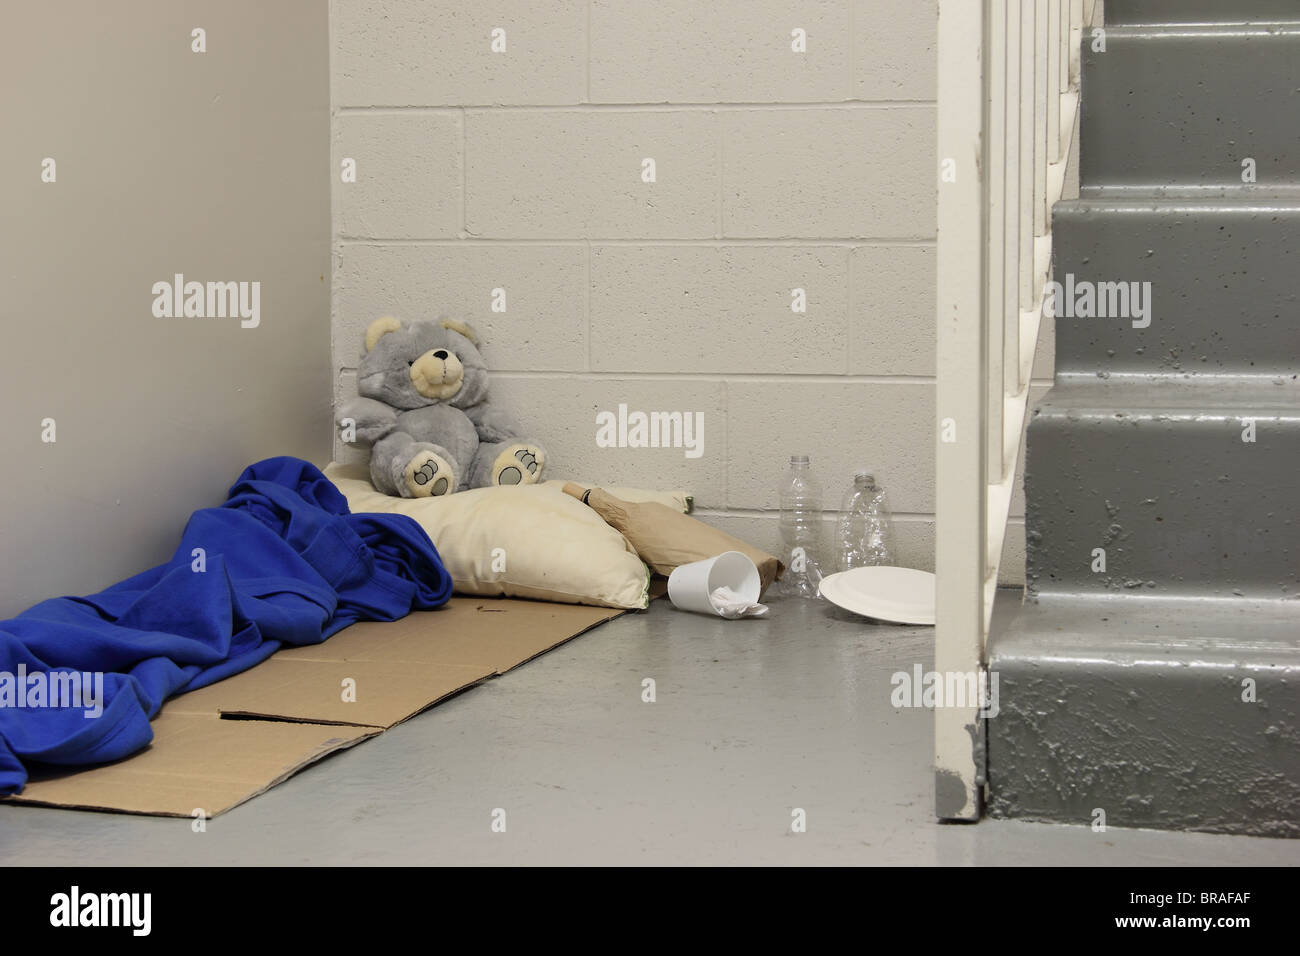 Sensational Homeless Bed Stock Photos Homeless Bed Stock Images Alamy Complete Home Design Collection Barbaintelli Responsecom